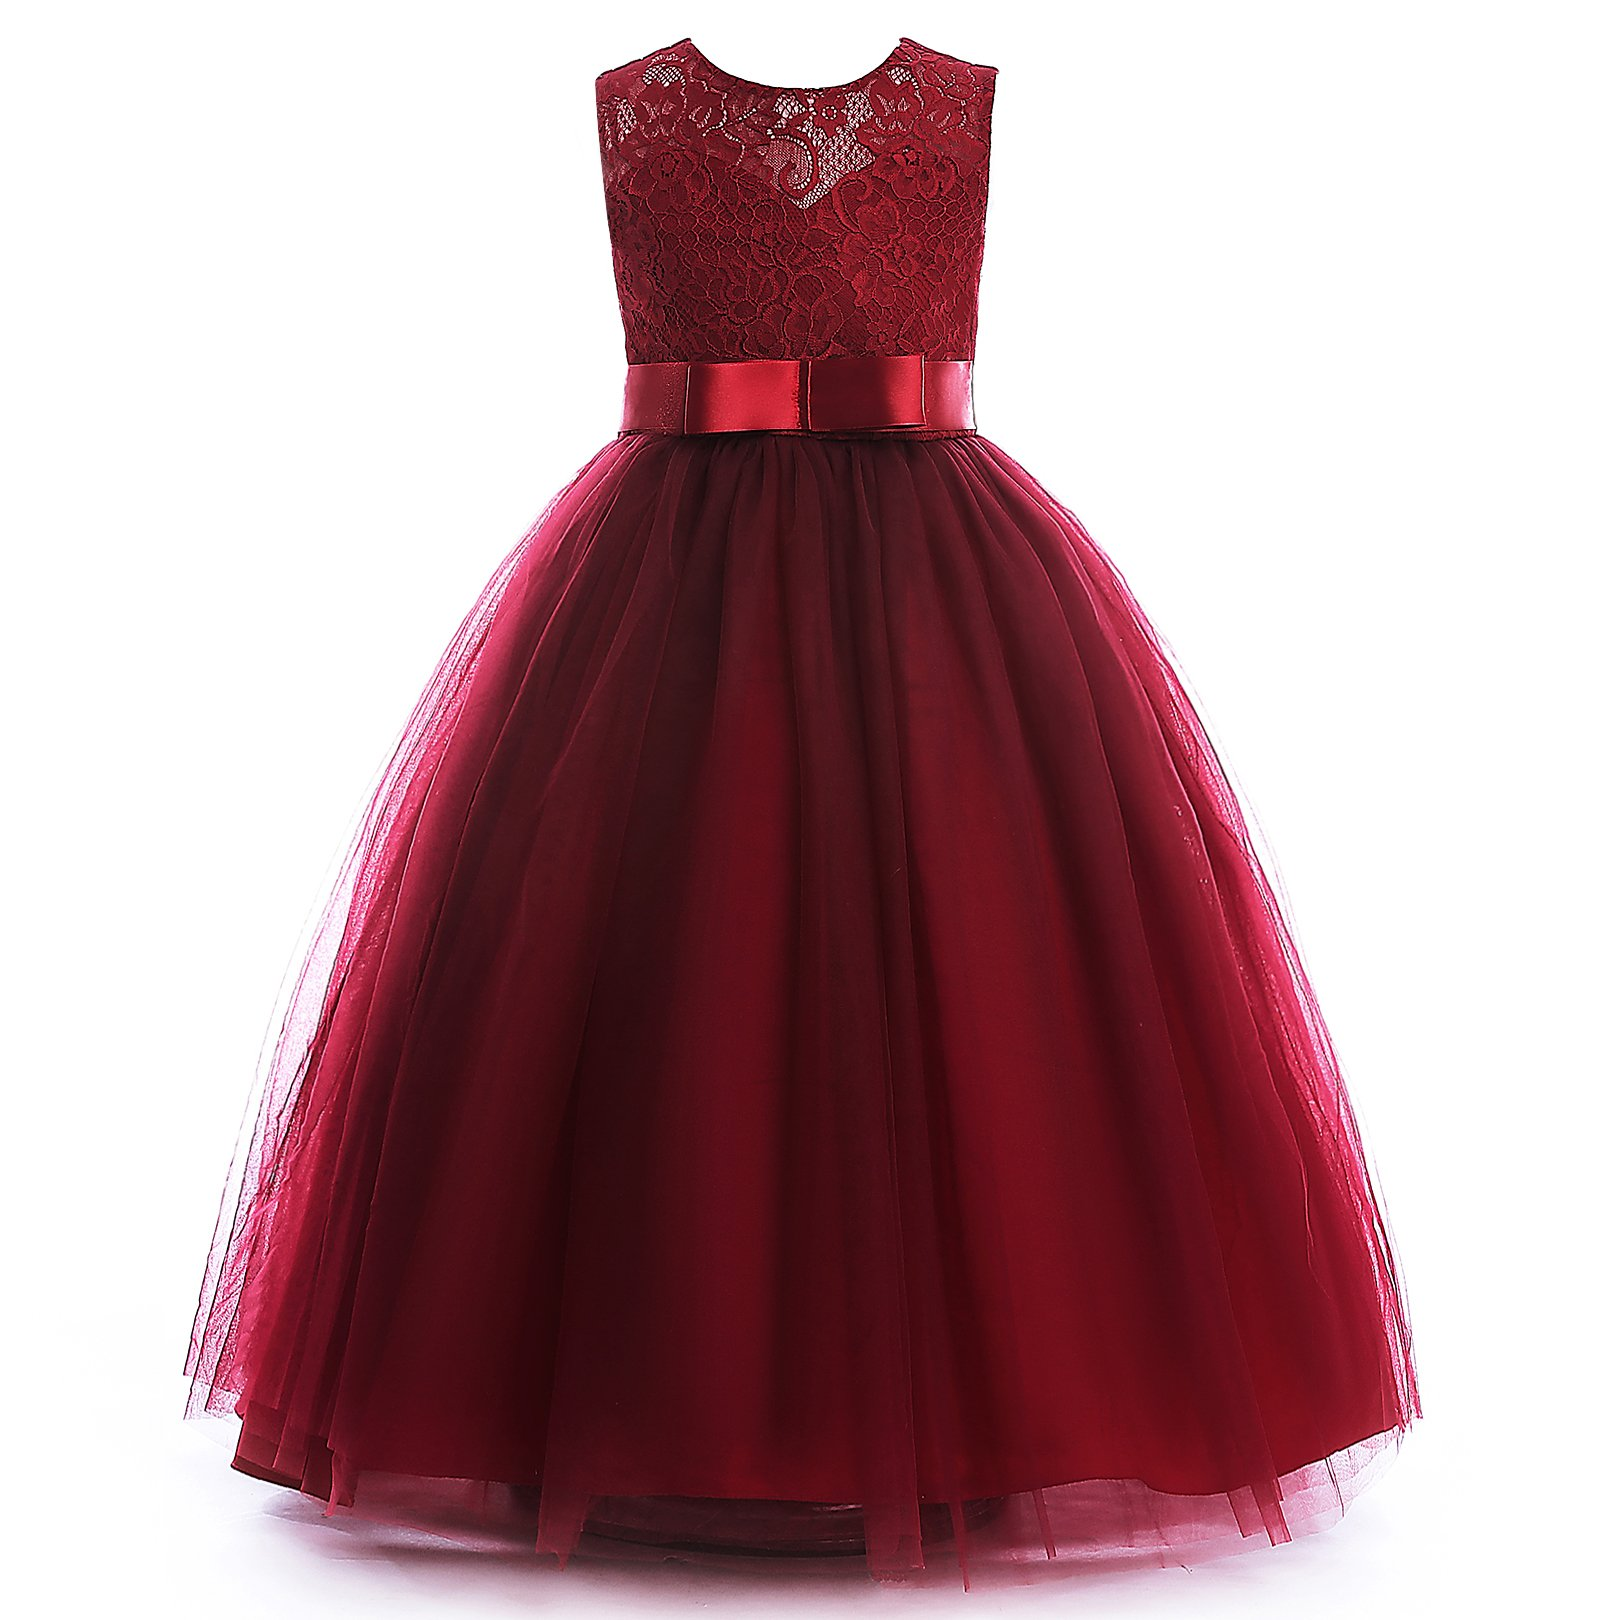 Glamulice Girls Lace Bridesmaid Dress Long A Line Wedding Pageant Dresses Tulle Party Gown Age 3-16Y (3-4Y, O-Wine Red)